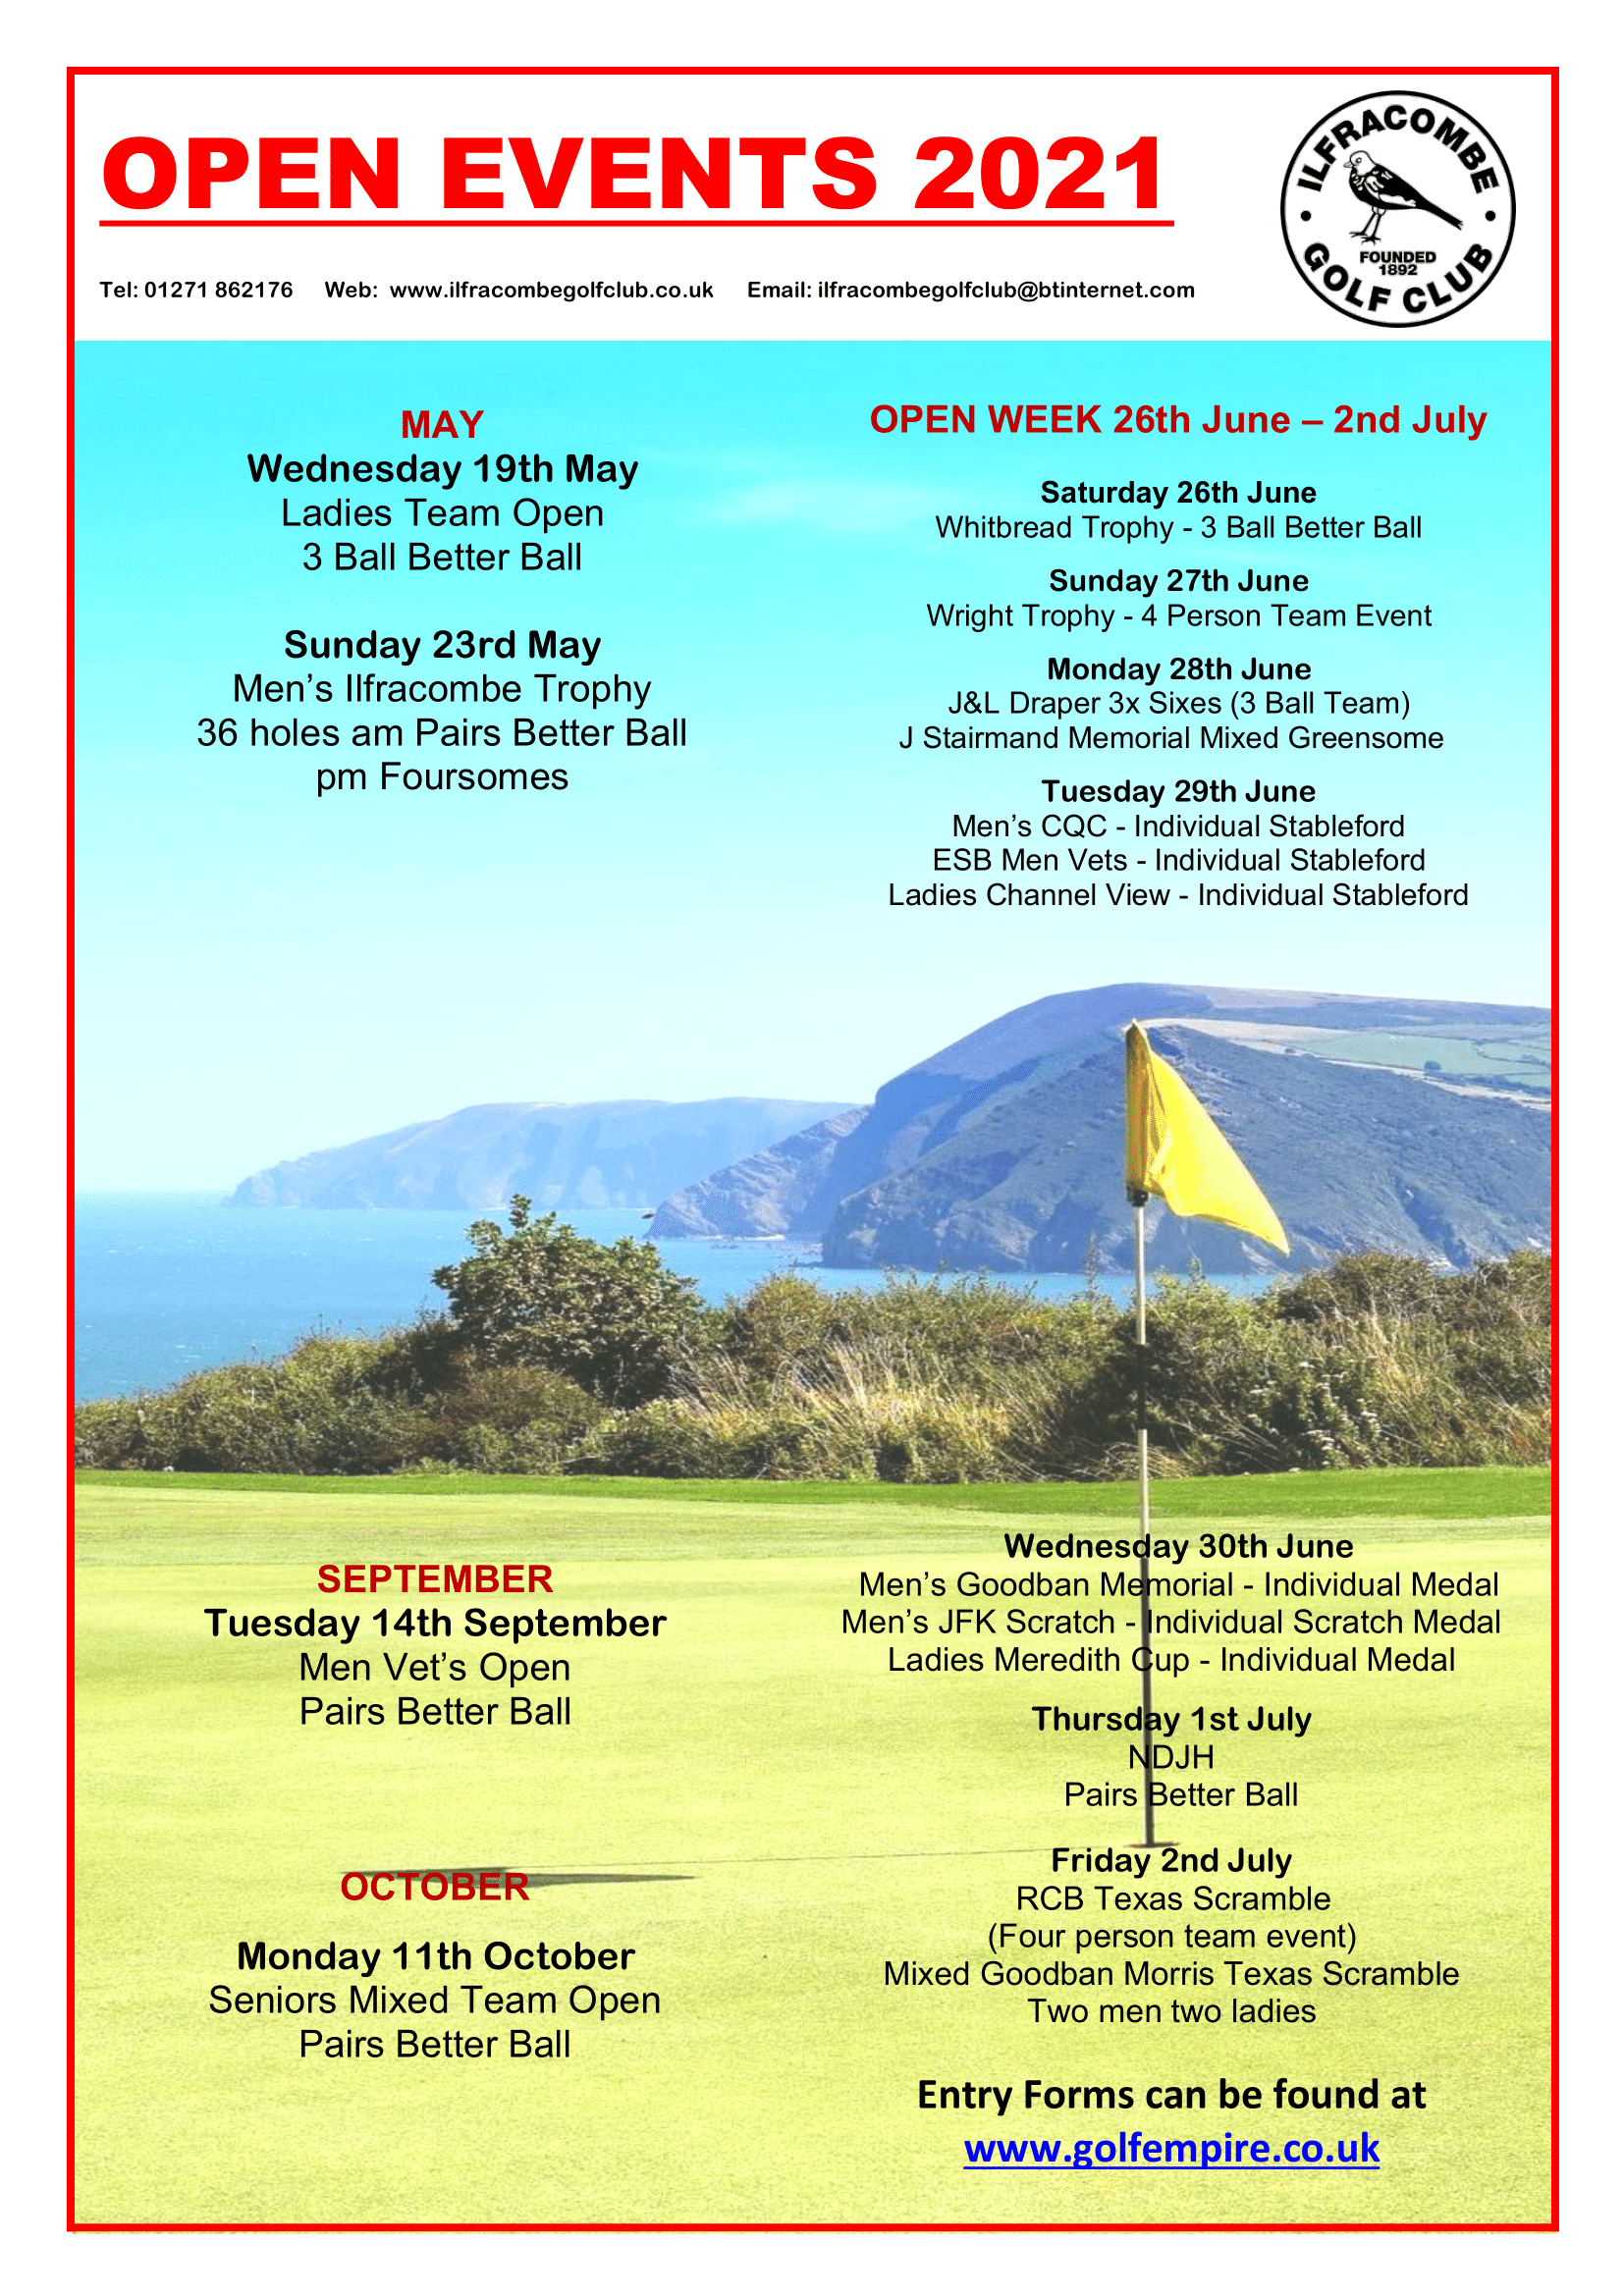 Ilfracombe Golf Club Open Events 2021